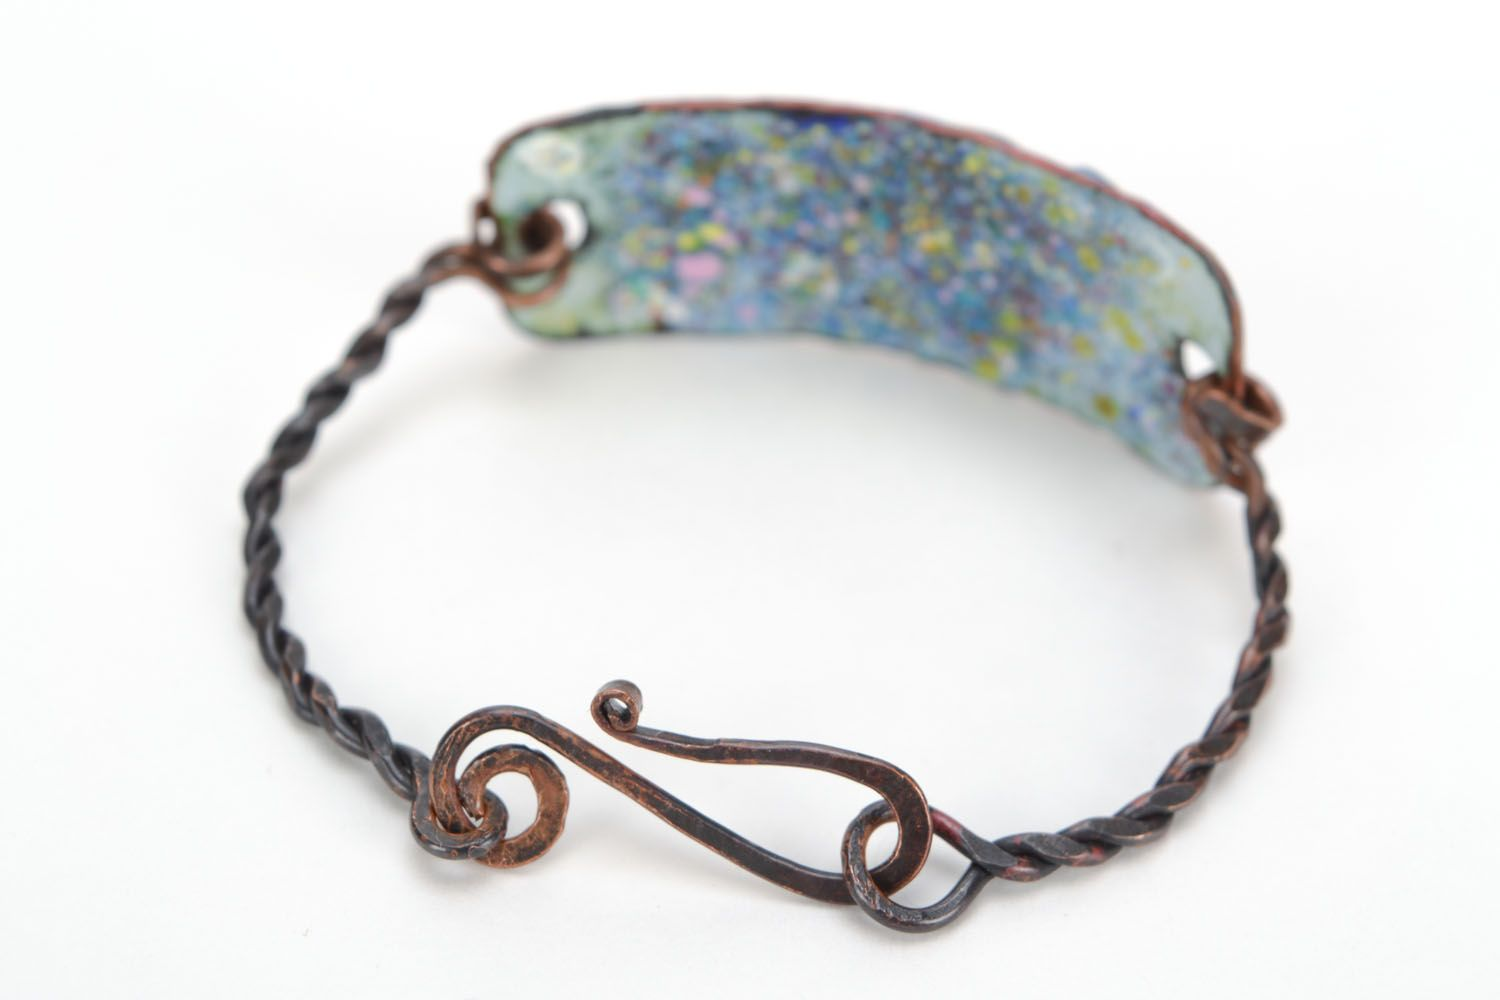 Homemade copper bracelet The Winged Horse Pegasus photo 4